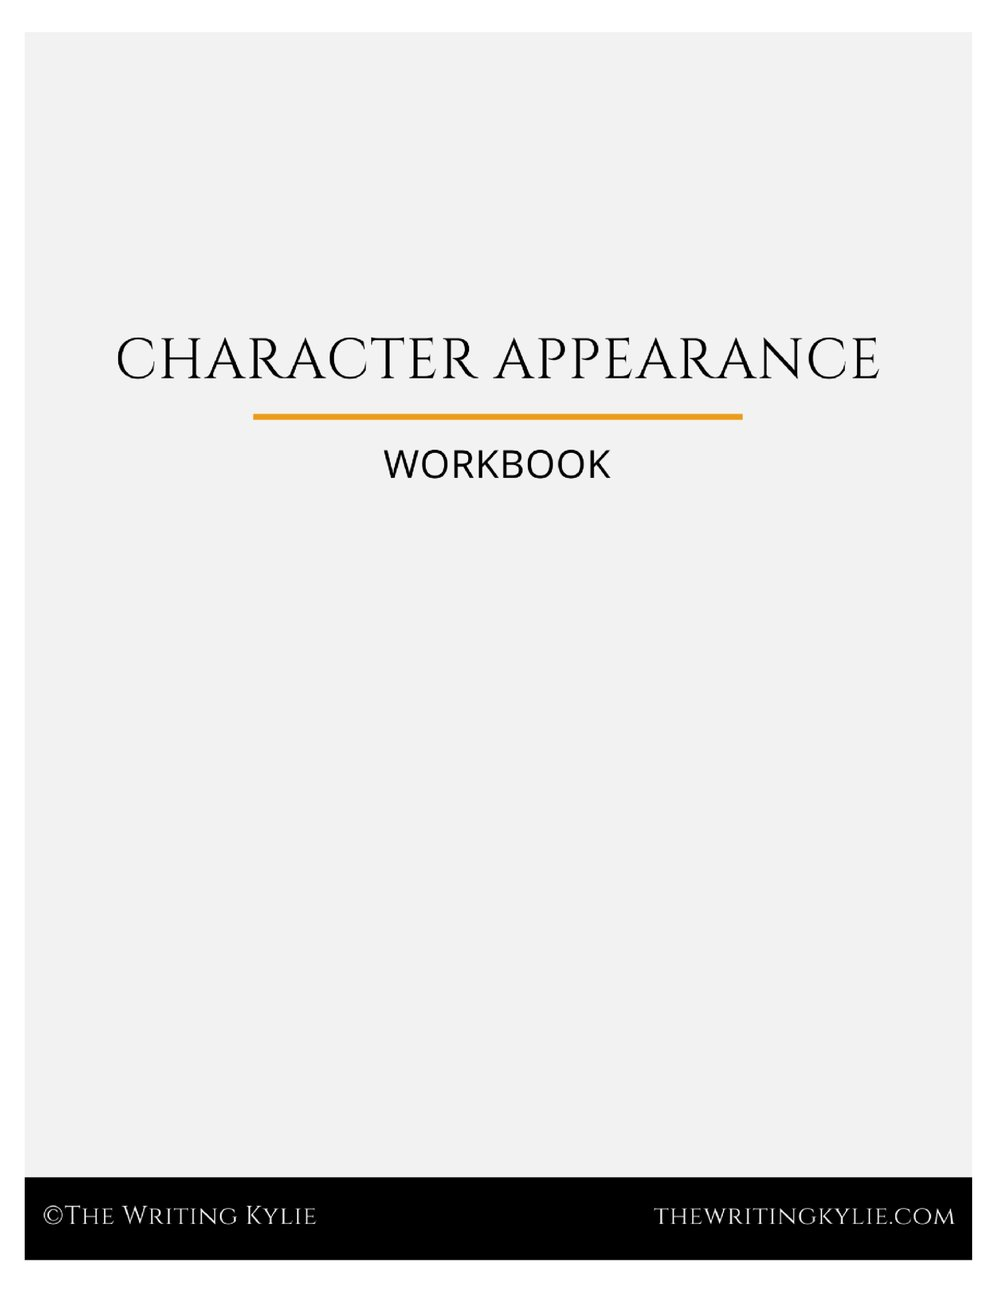 Download the  FREE  Character Appearance Template pdf to pin down your character's appearance